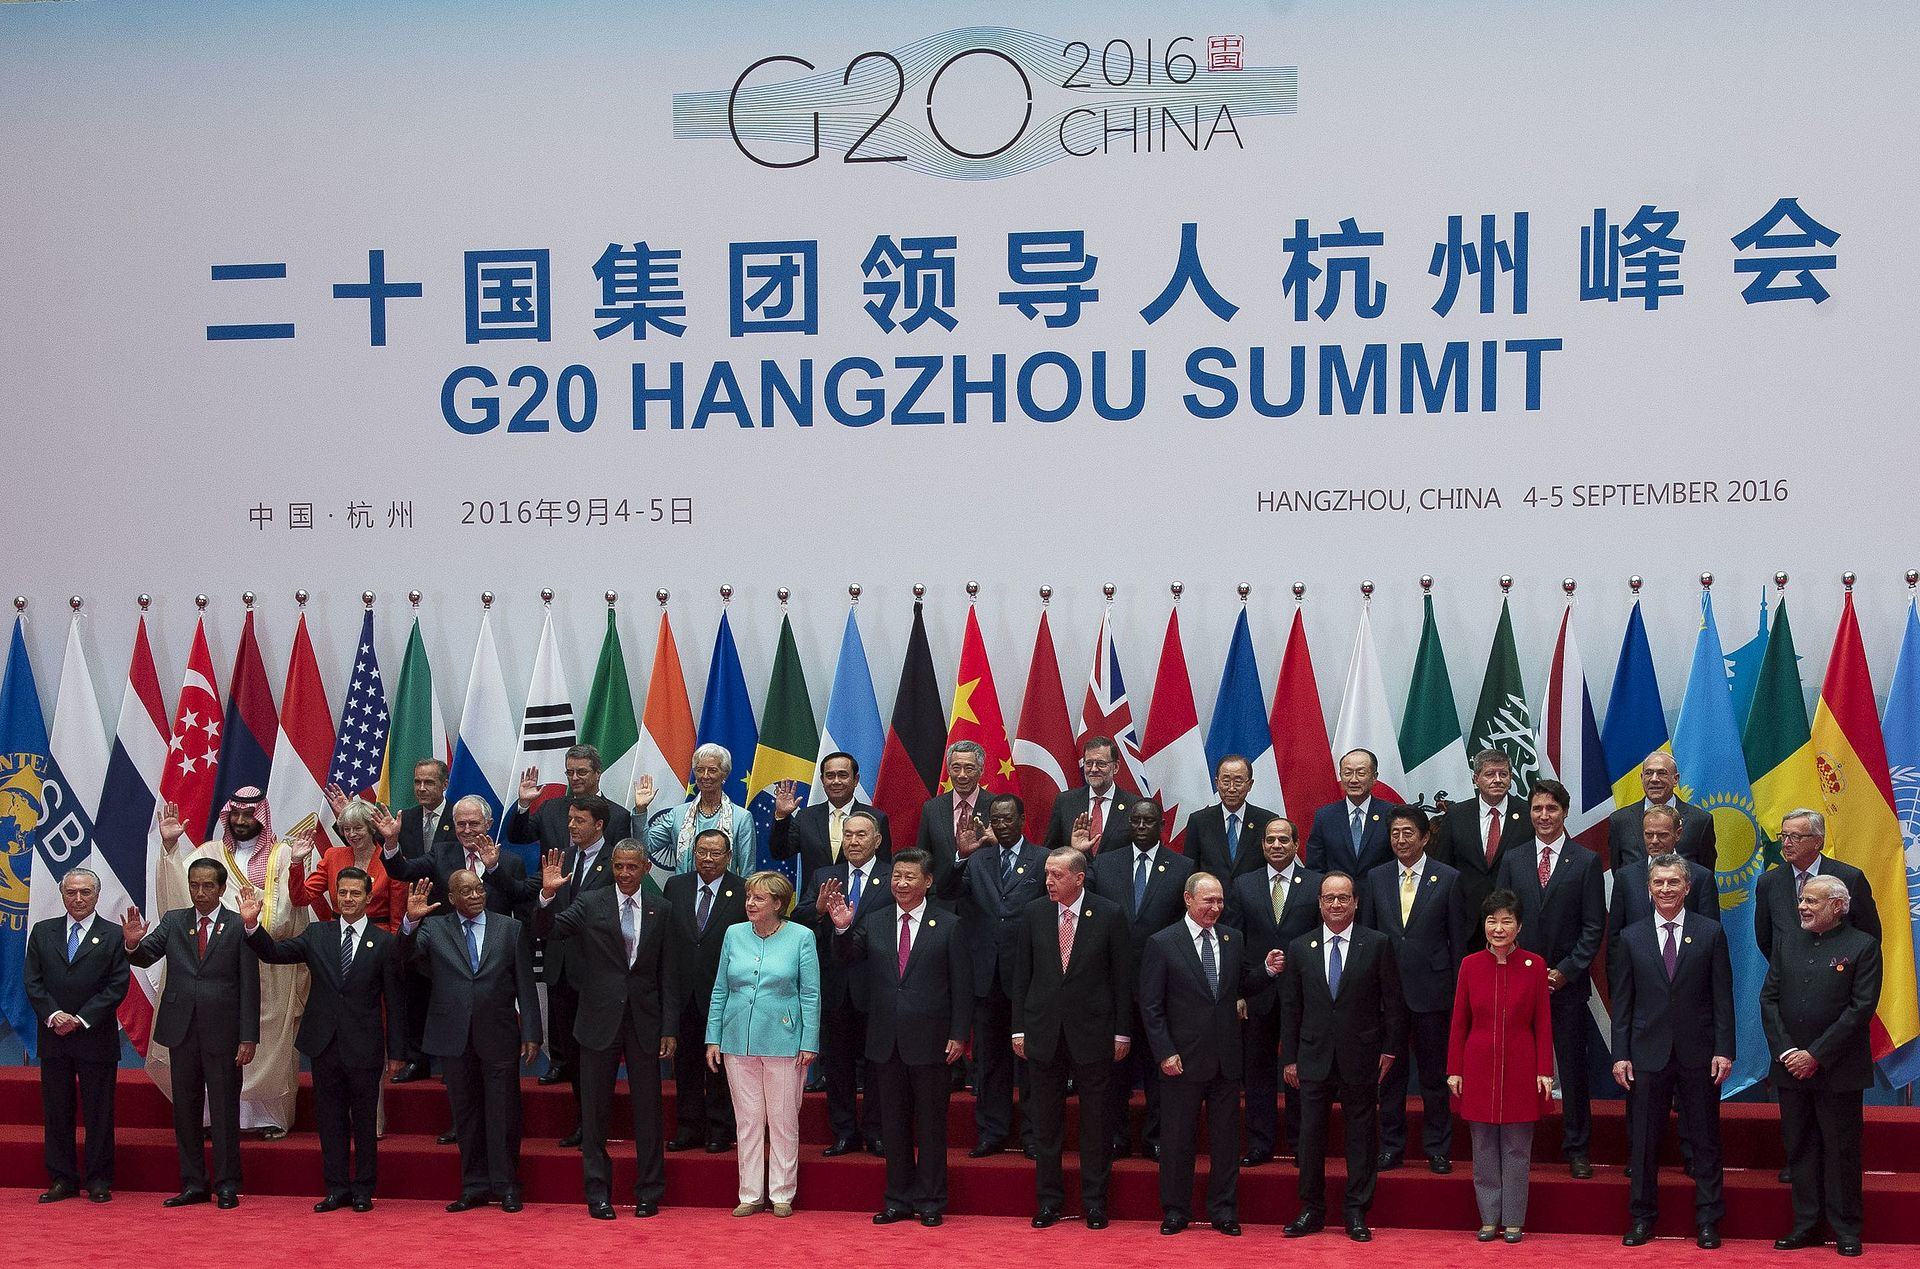 G20 2016 Group Photo